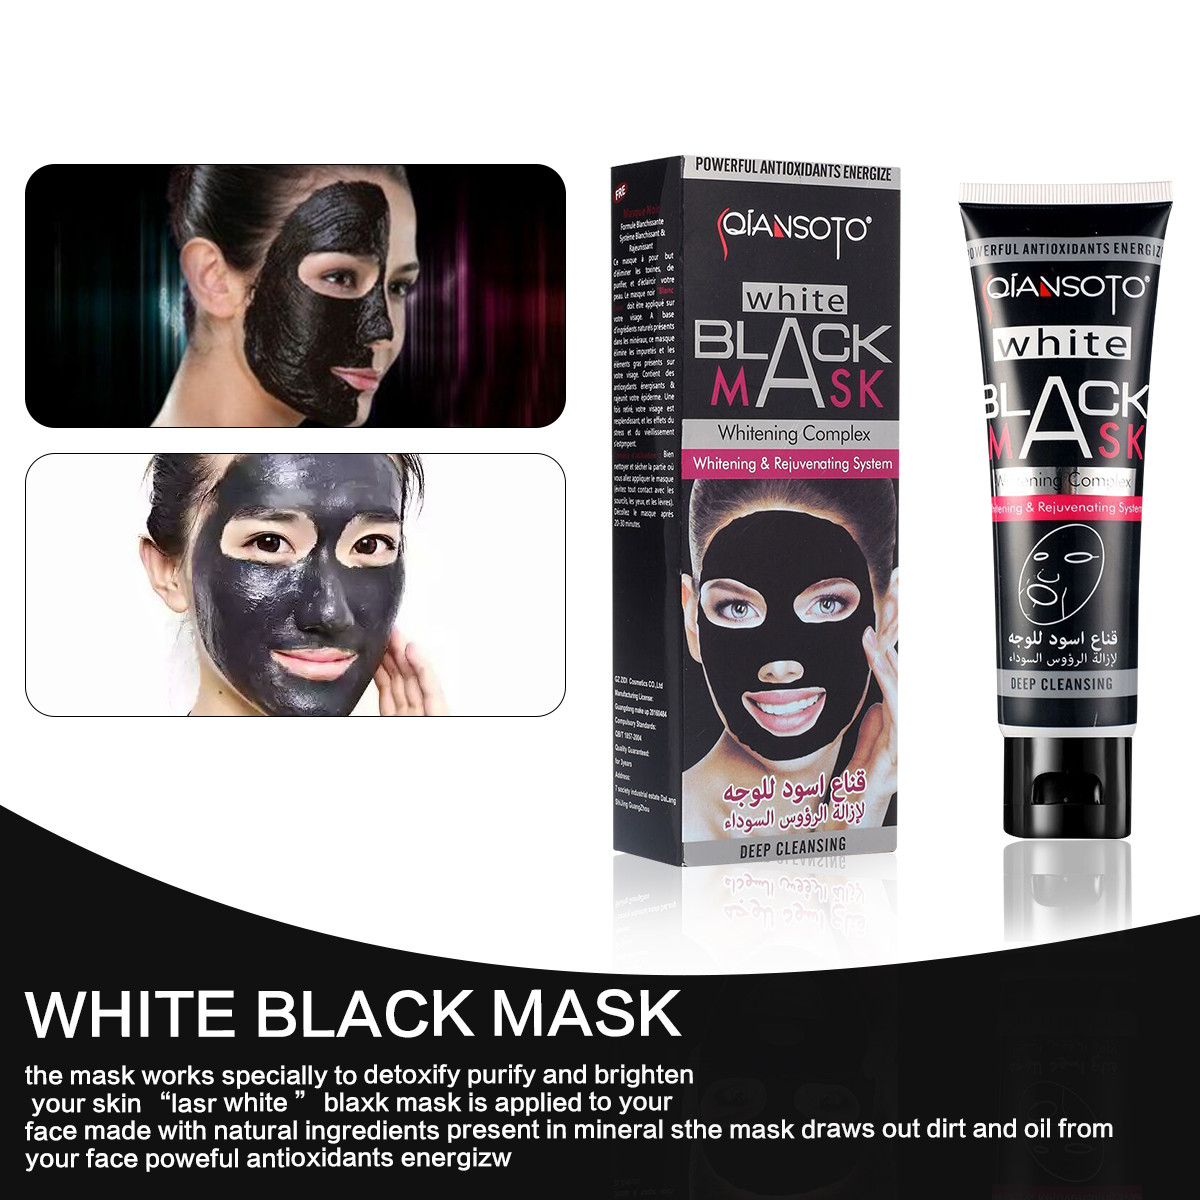 Face Skin Care Tools The Cheapest Price Outtop Blackhead Remover Skin Care Cream Deep Clean Purifying Peel Black Mud Face Mask 6a23 Drop Shipping